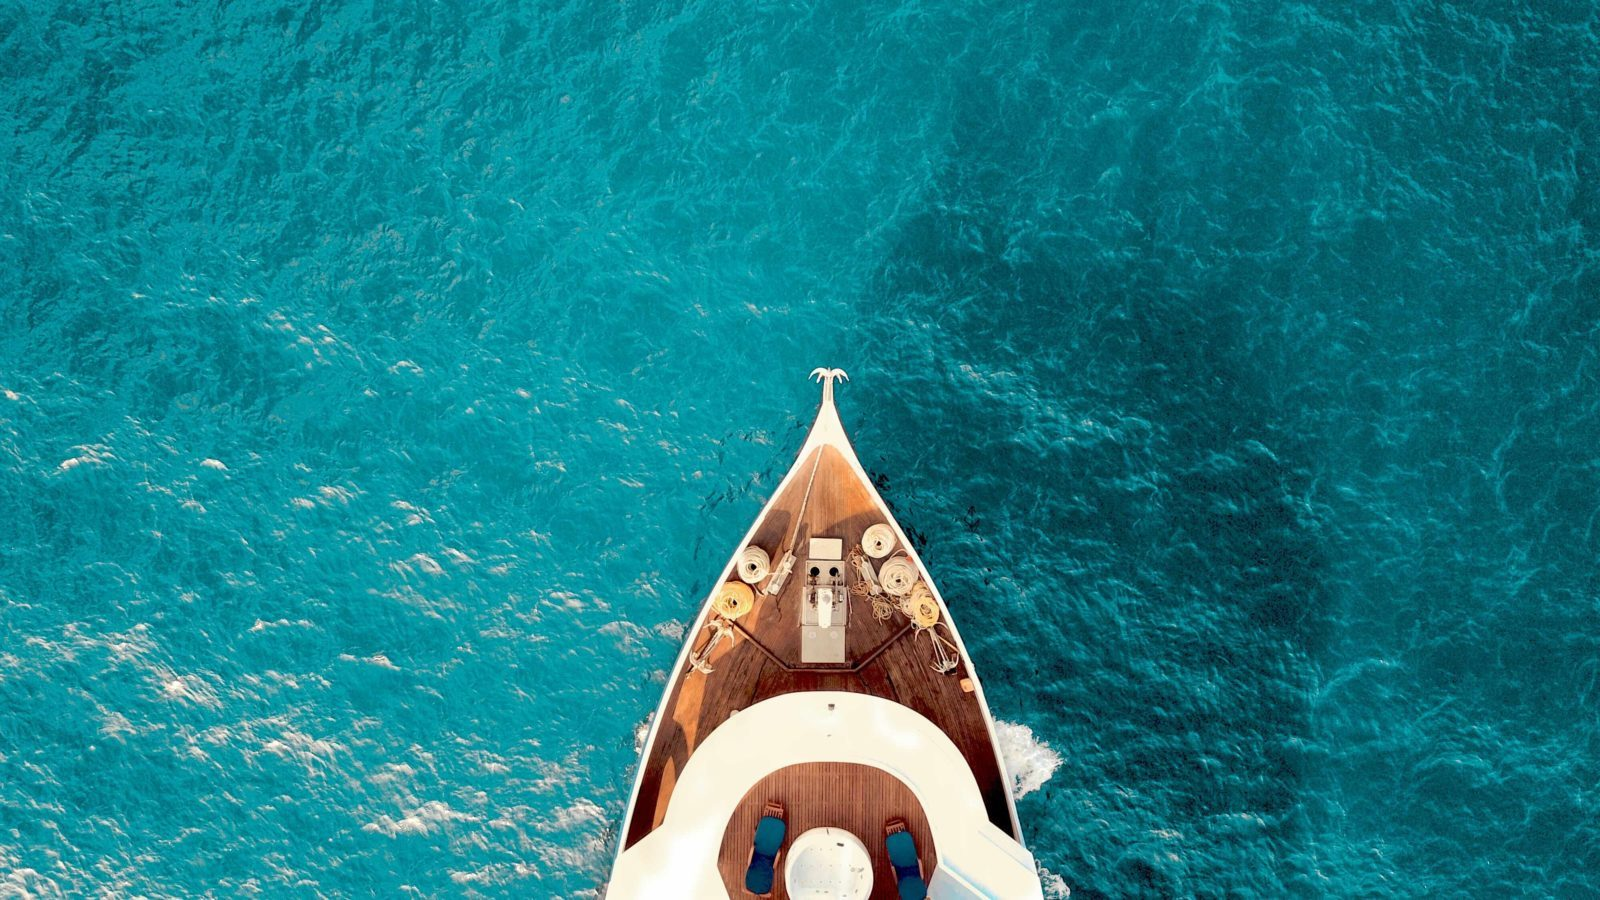 Sail around Singapore's seas with these yacht rentals and charters